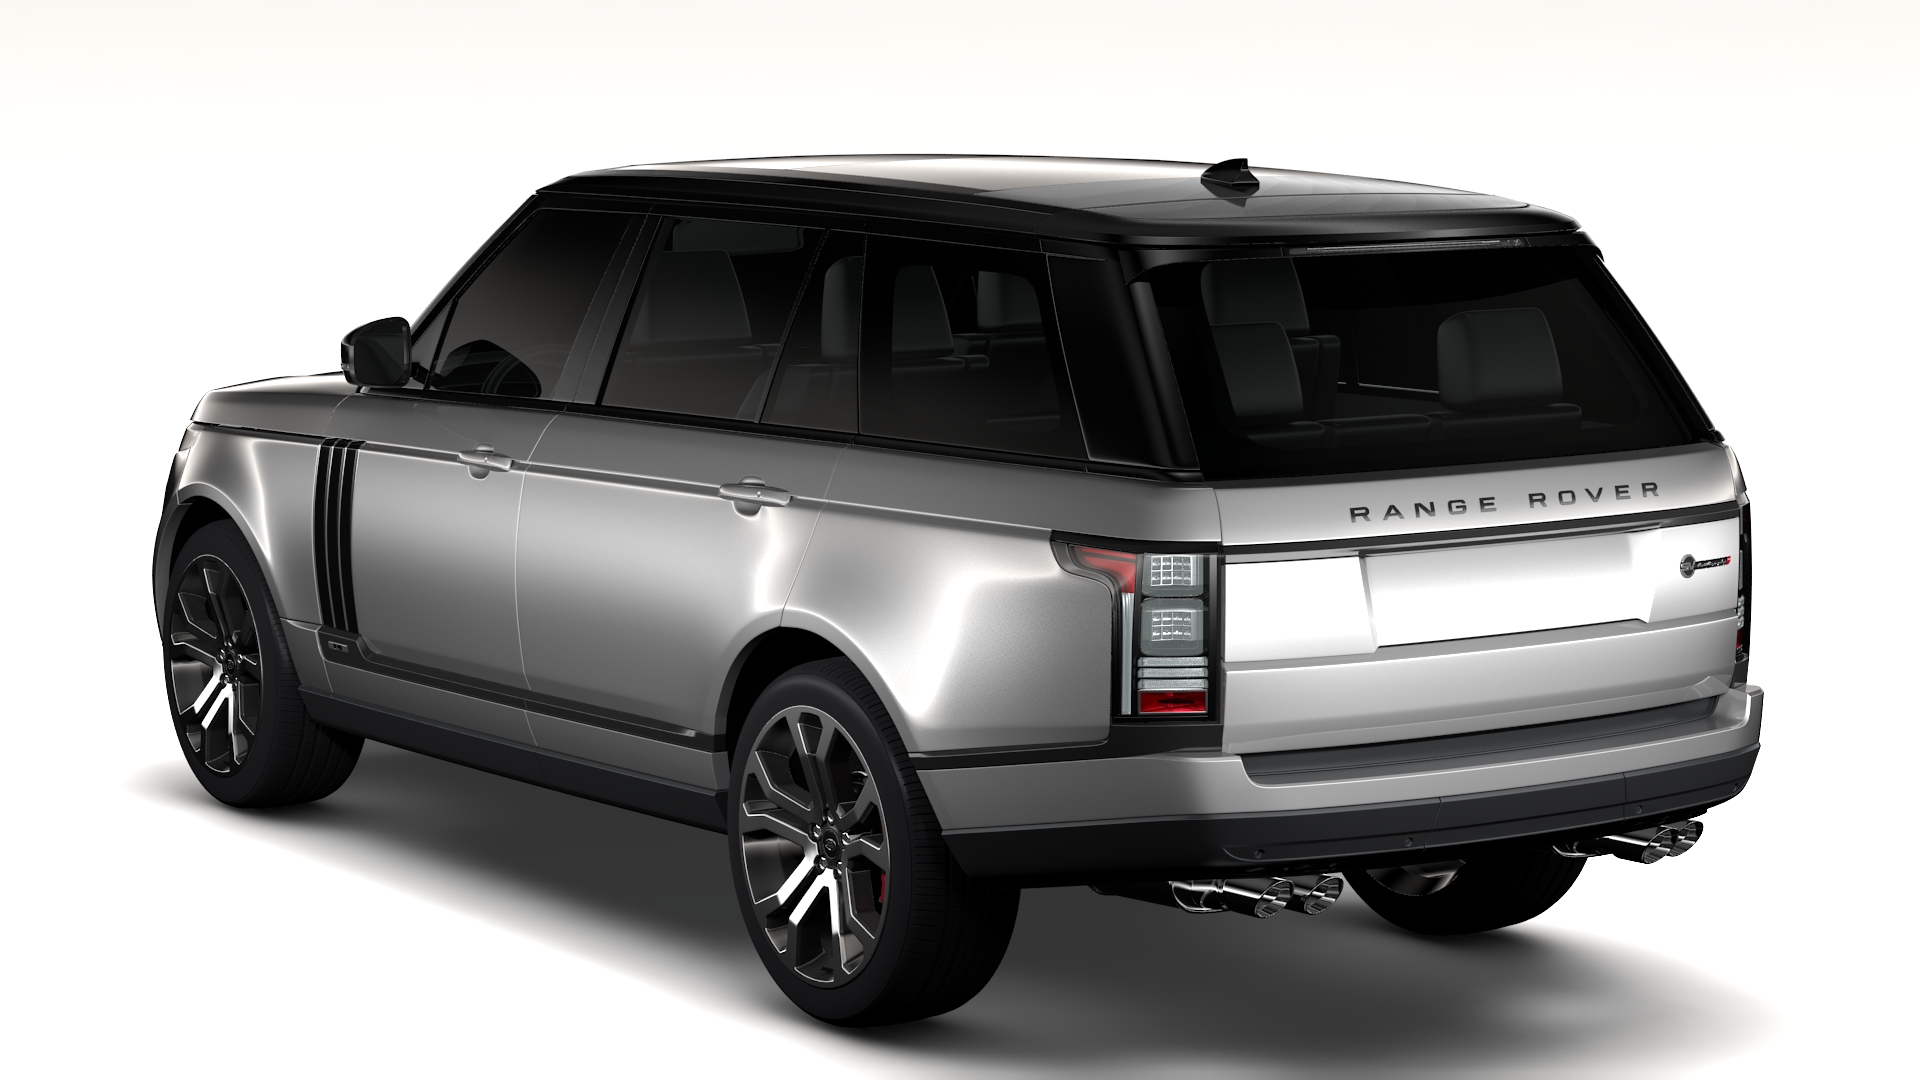 range rover svautobiography dynamic lwb 2017 3d model flatpyramid. Black Bedroom Furniture Sets. Home Design Ideas